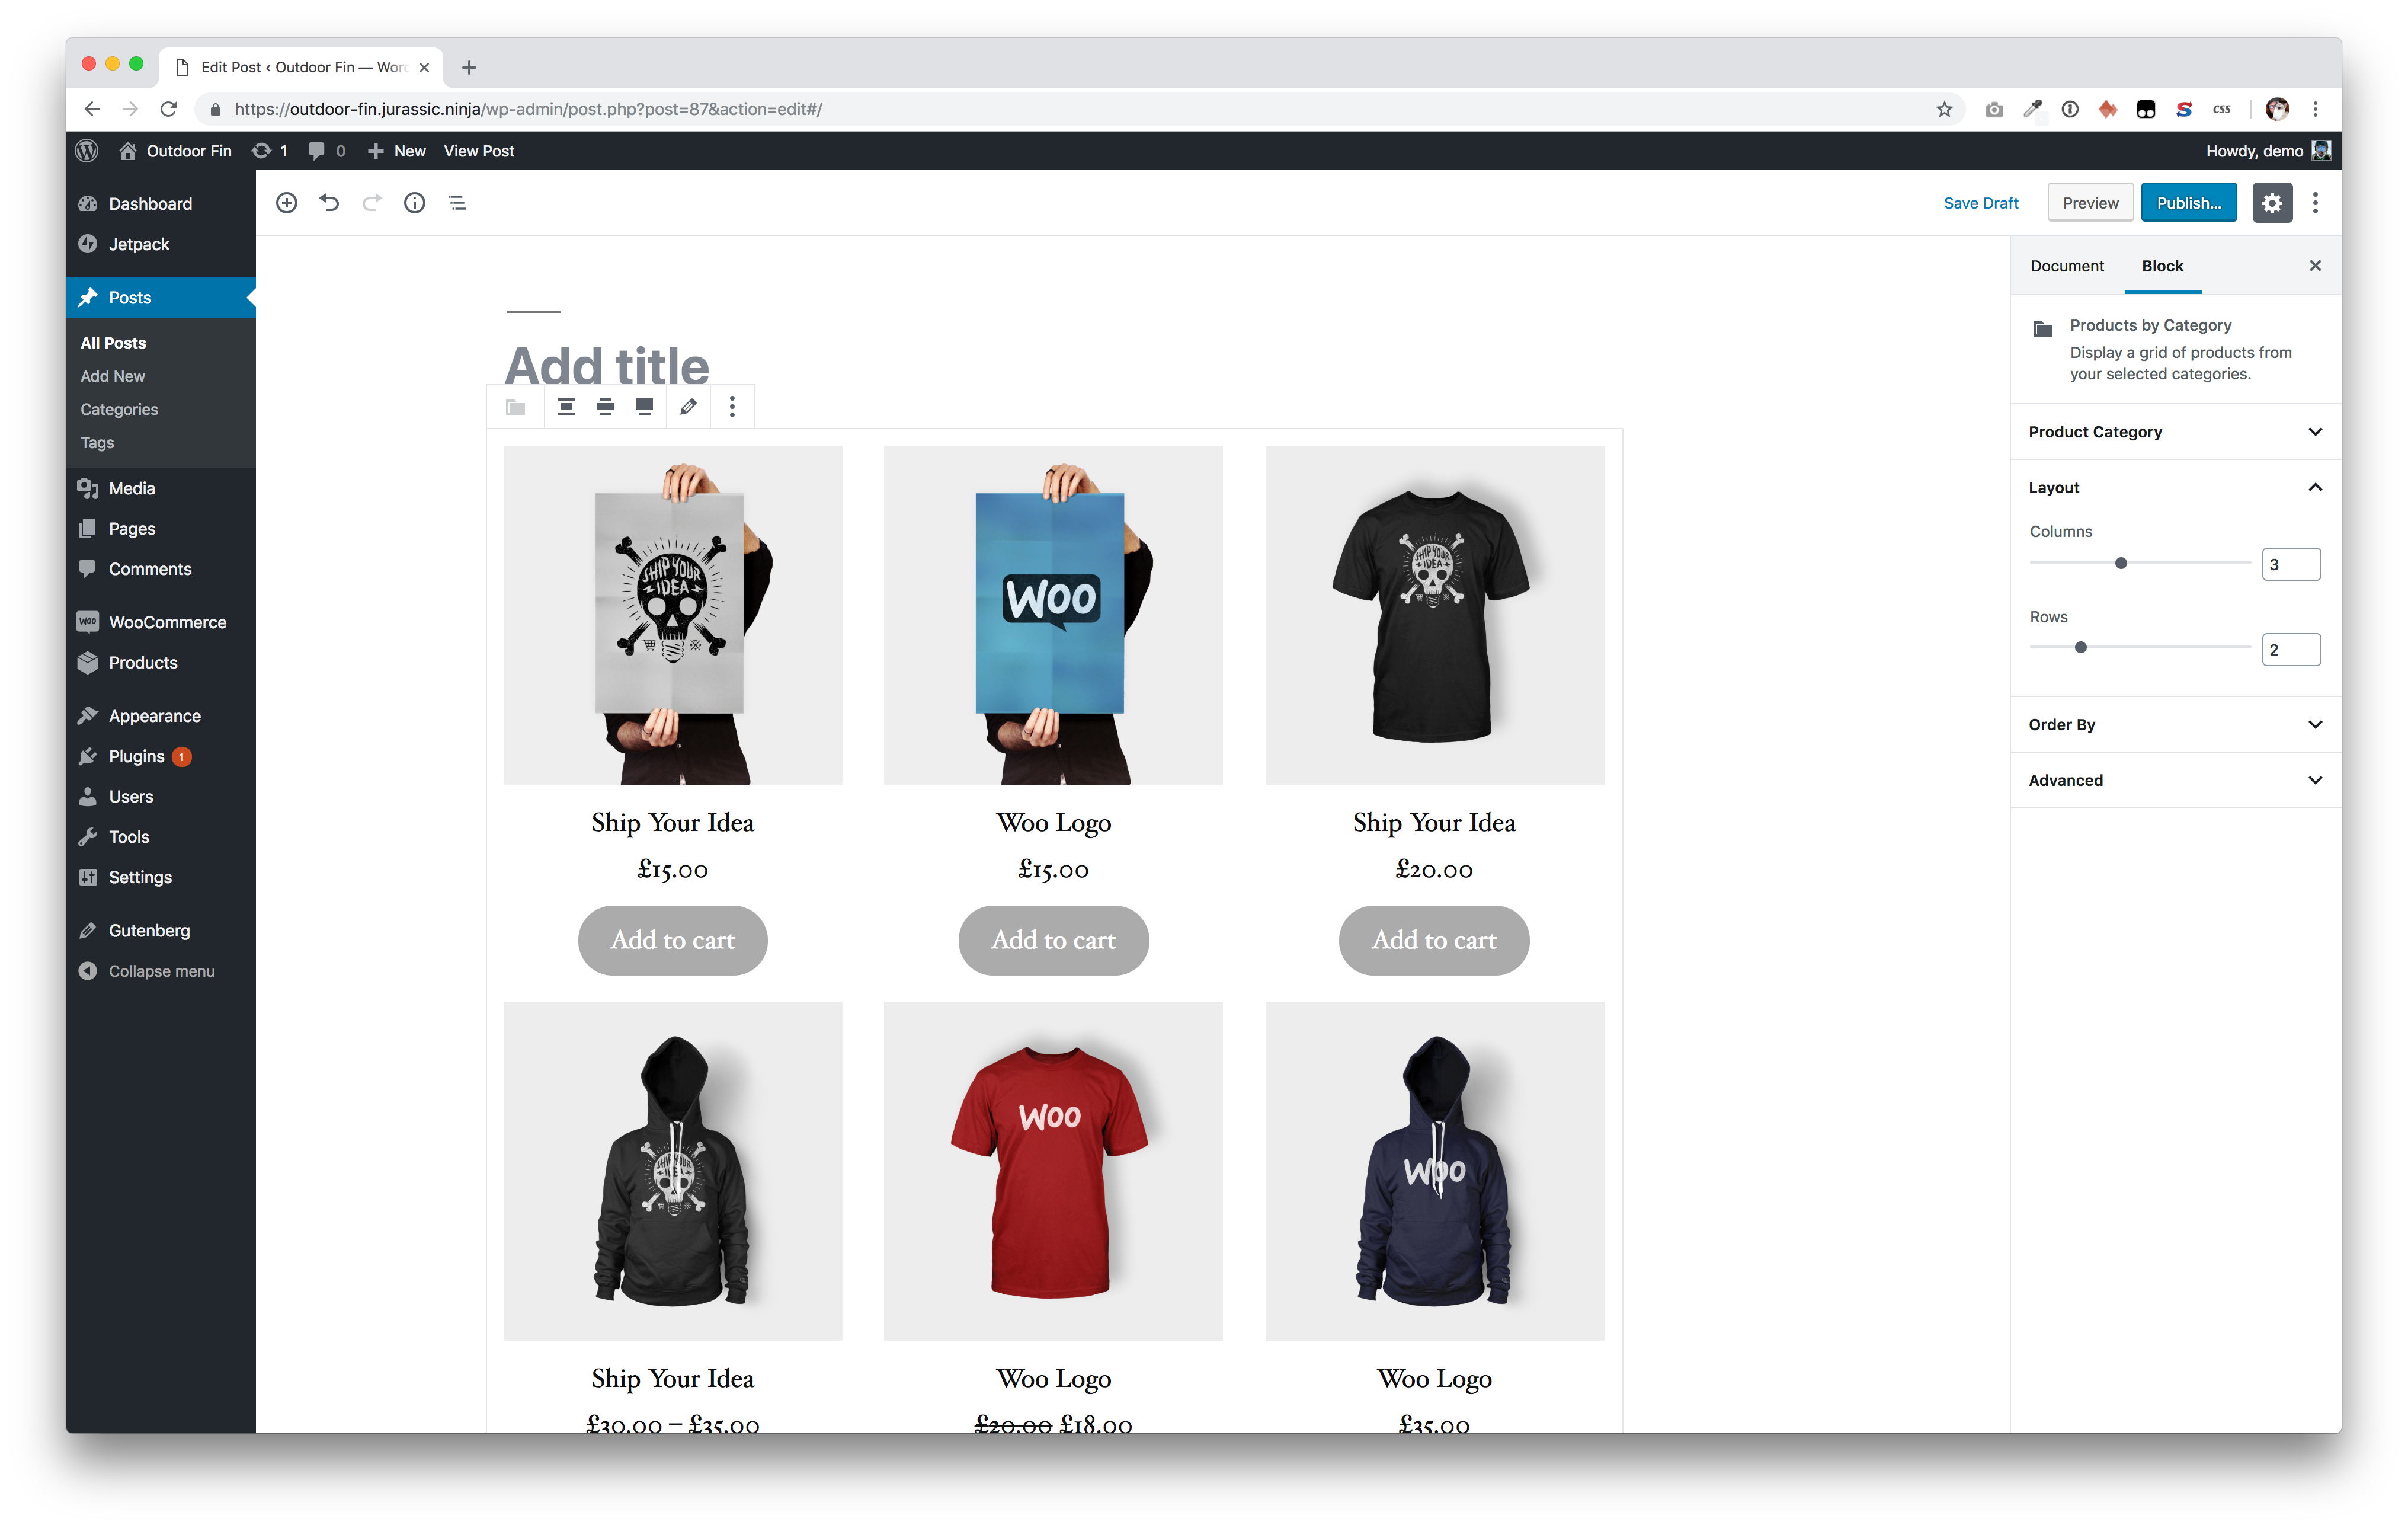 I will upload or add products to any website like woocommerce, shopify, etc data entry